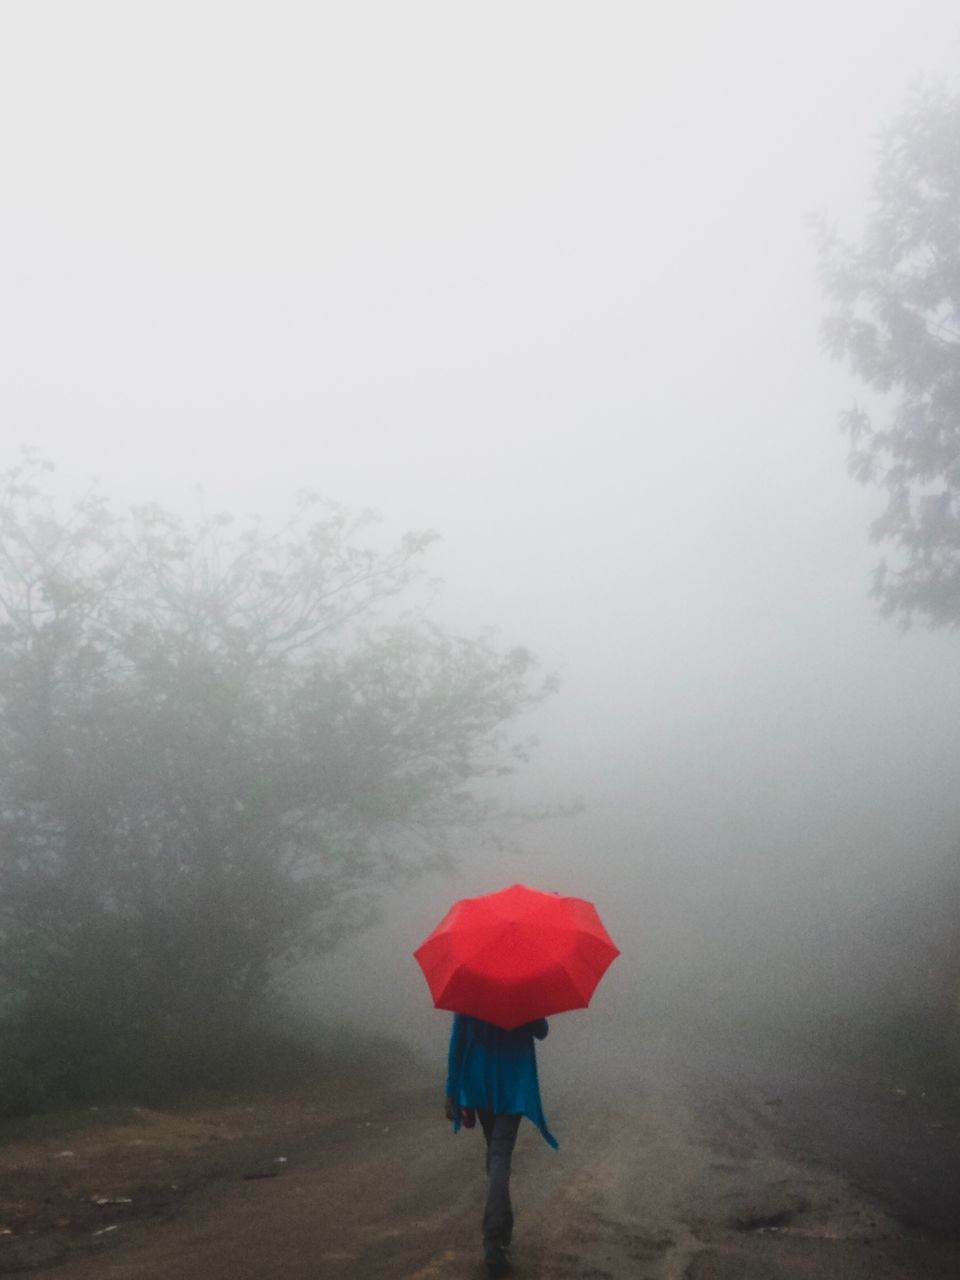 fog, one person, tree, real people, plant, umbrella, rear view, nature, beauty in nature, land, sky, standing, day, lifestyles, protection, leisure activity, women, tranquility, outdoors, rain, rainy season